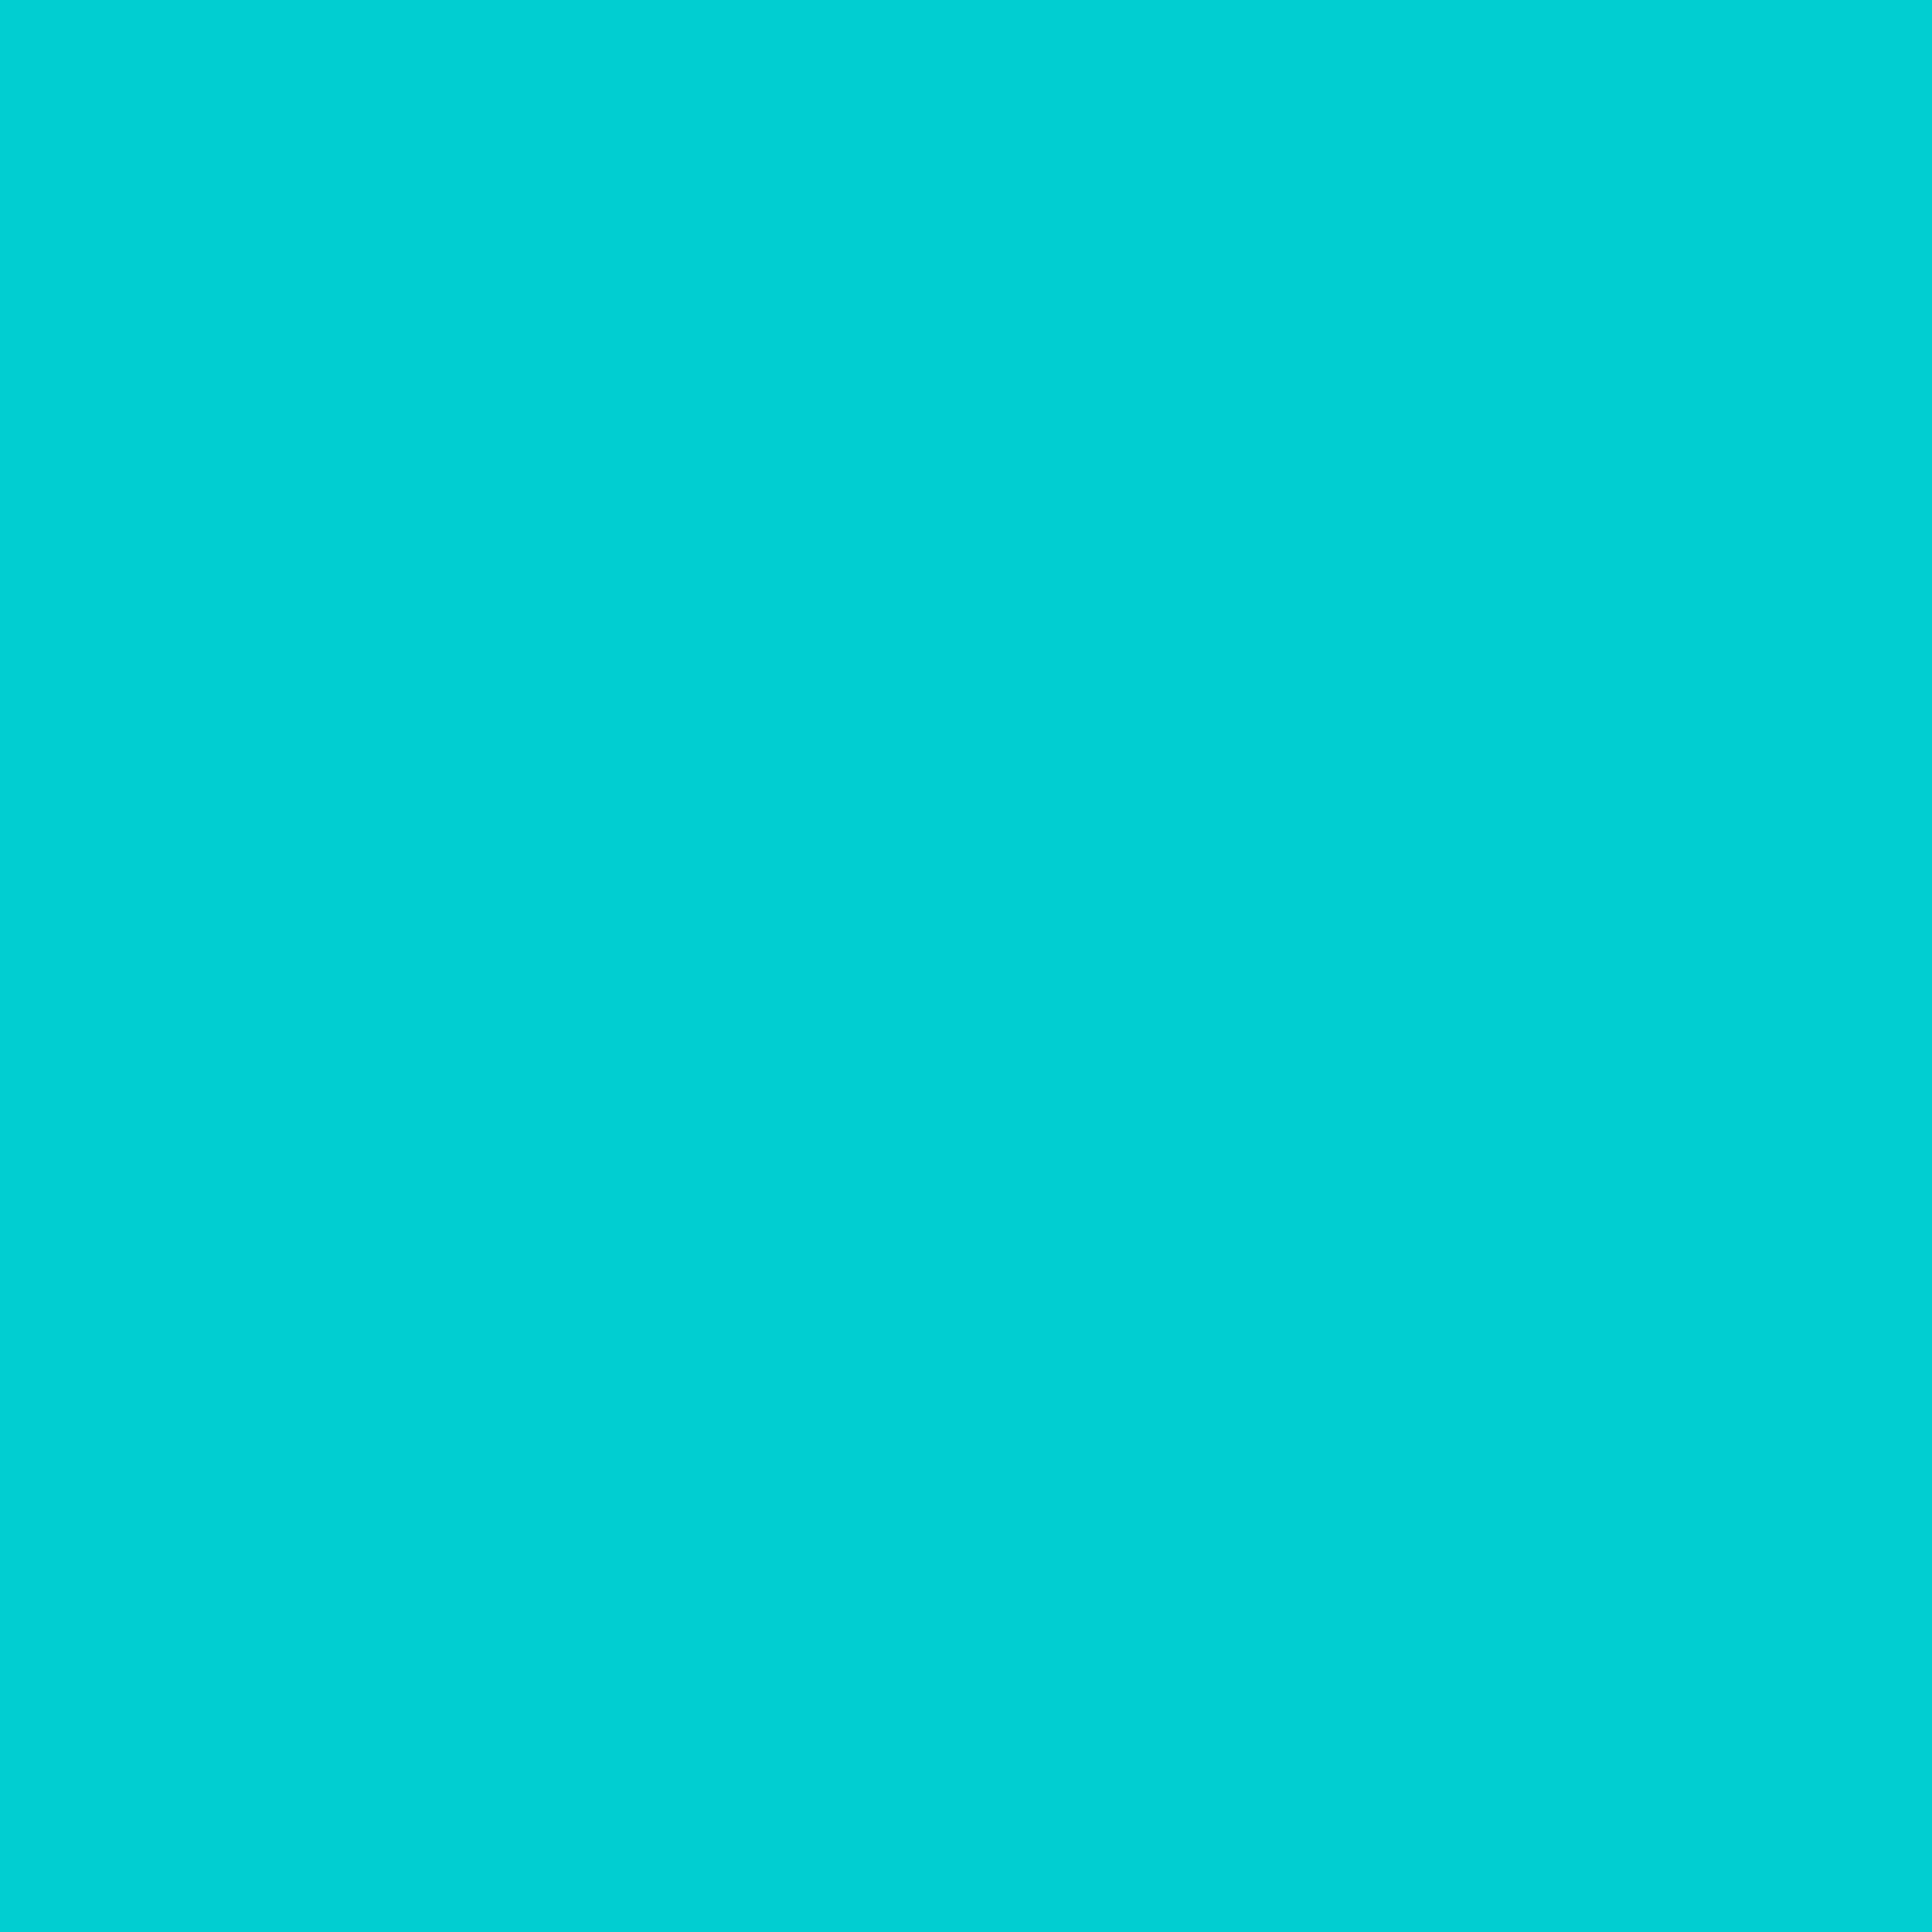 2048x2048 Dark Turquoise Solid Color Background